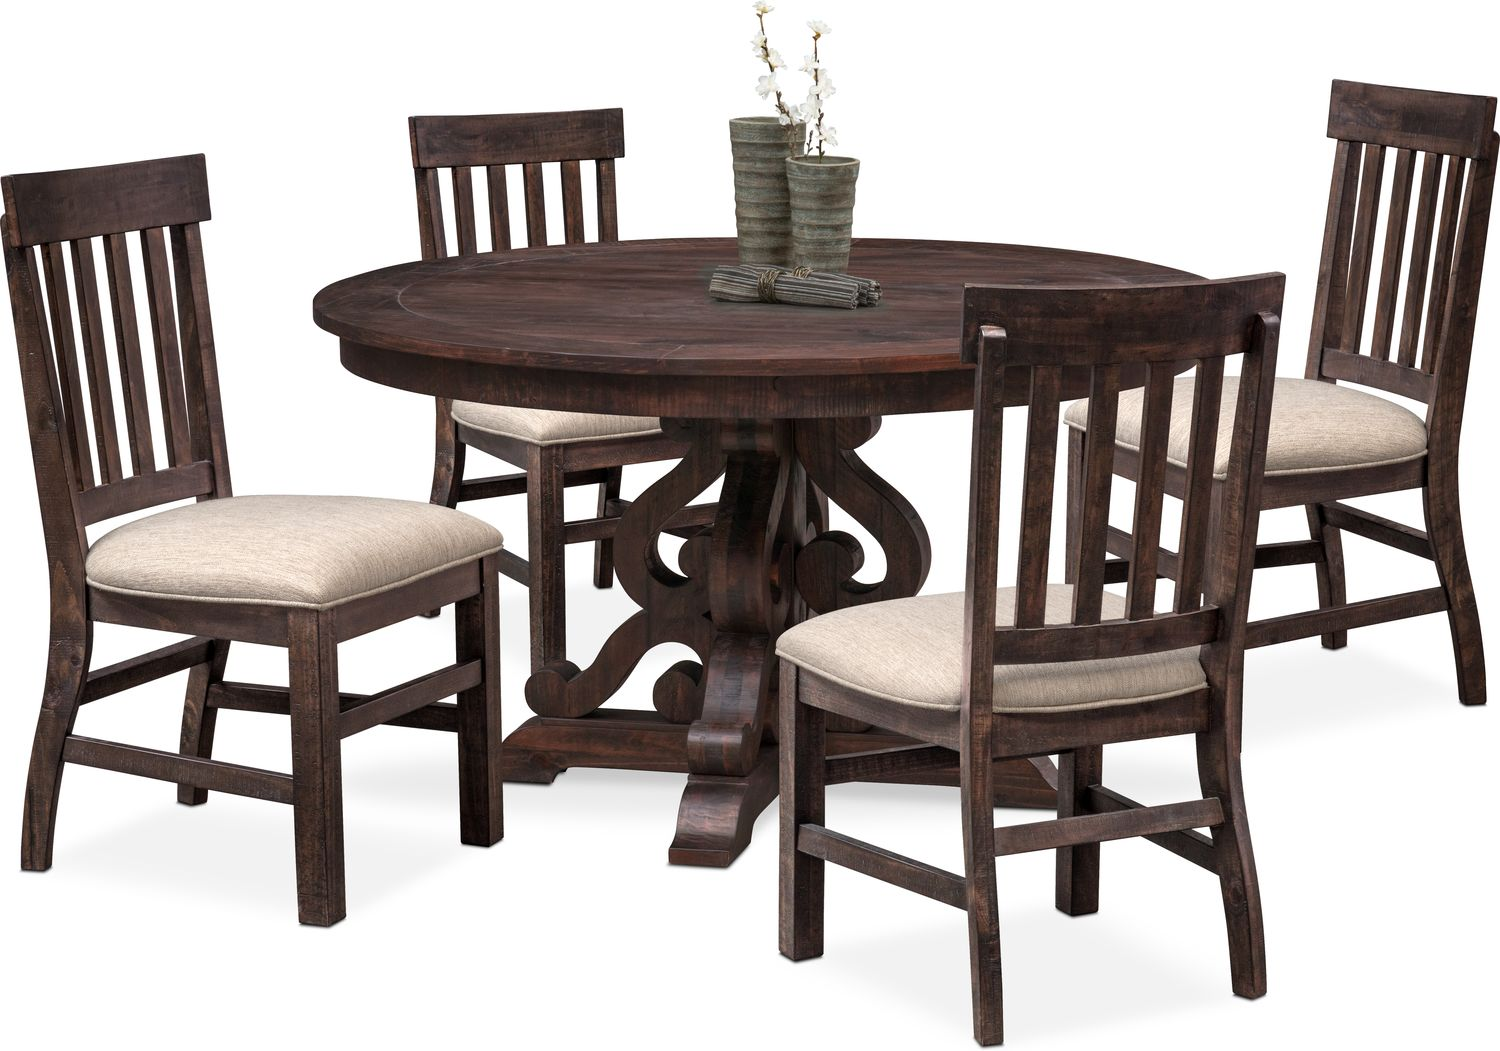 Hover Round Chairs Charthouse Round Dining Table And 4 Side Chairs